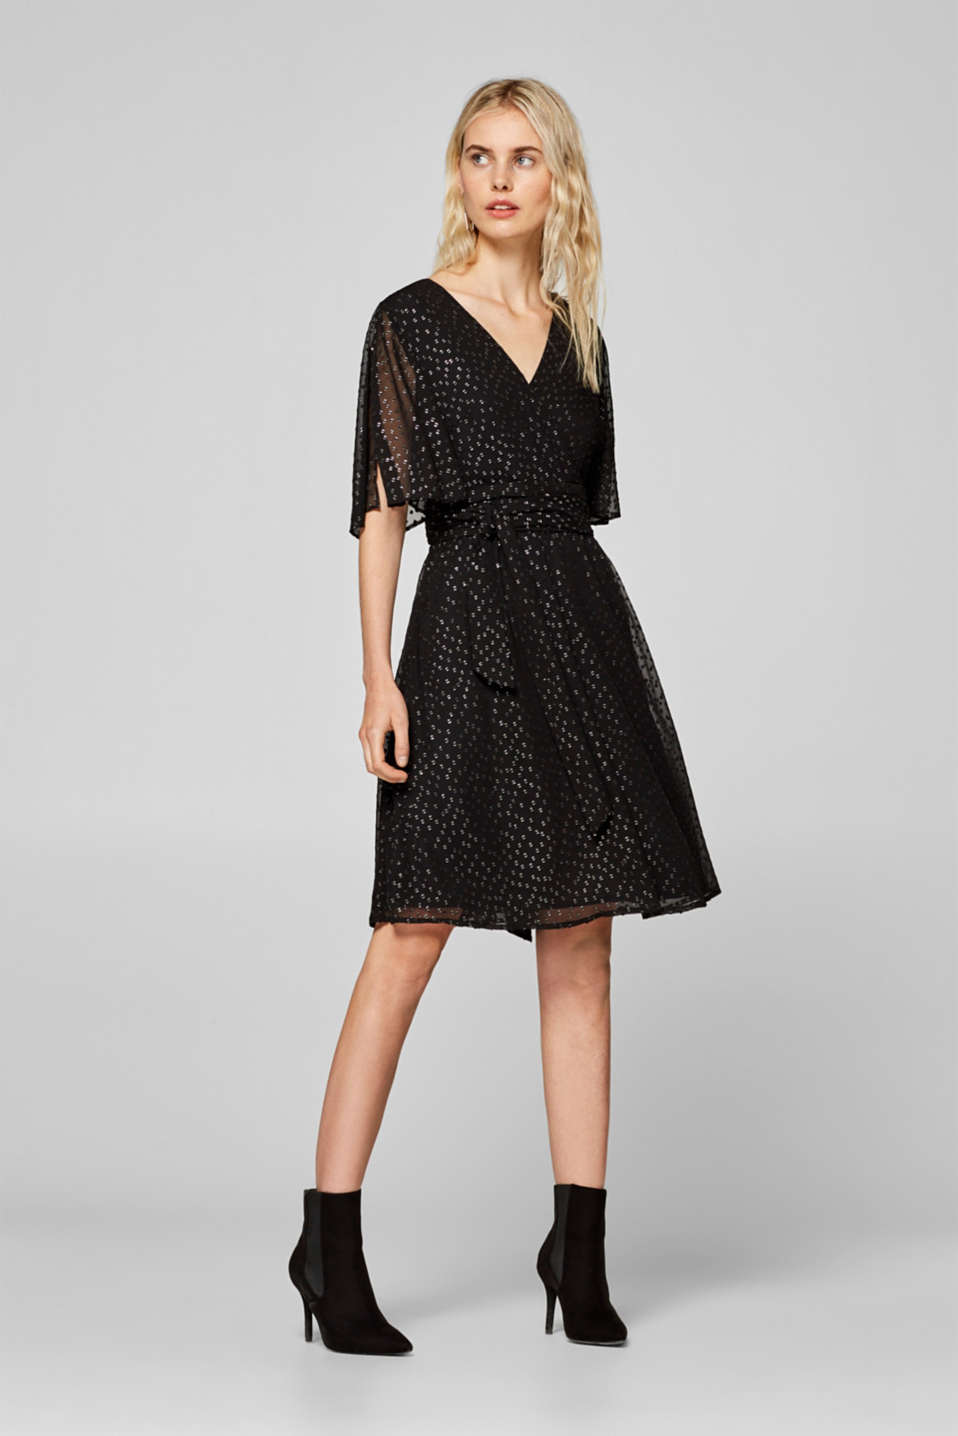 Esprit - Chiffon dress with silver-coloured woven polka dots